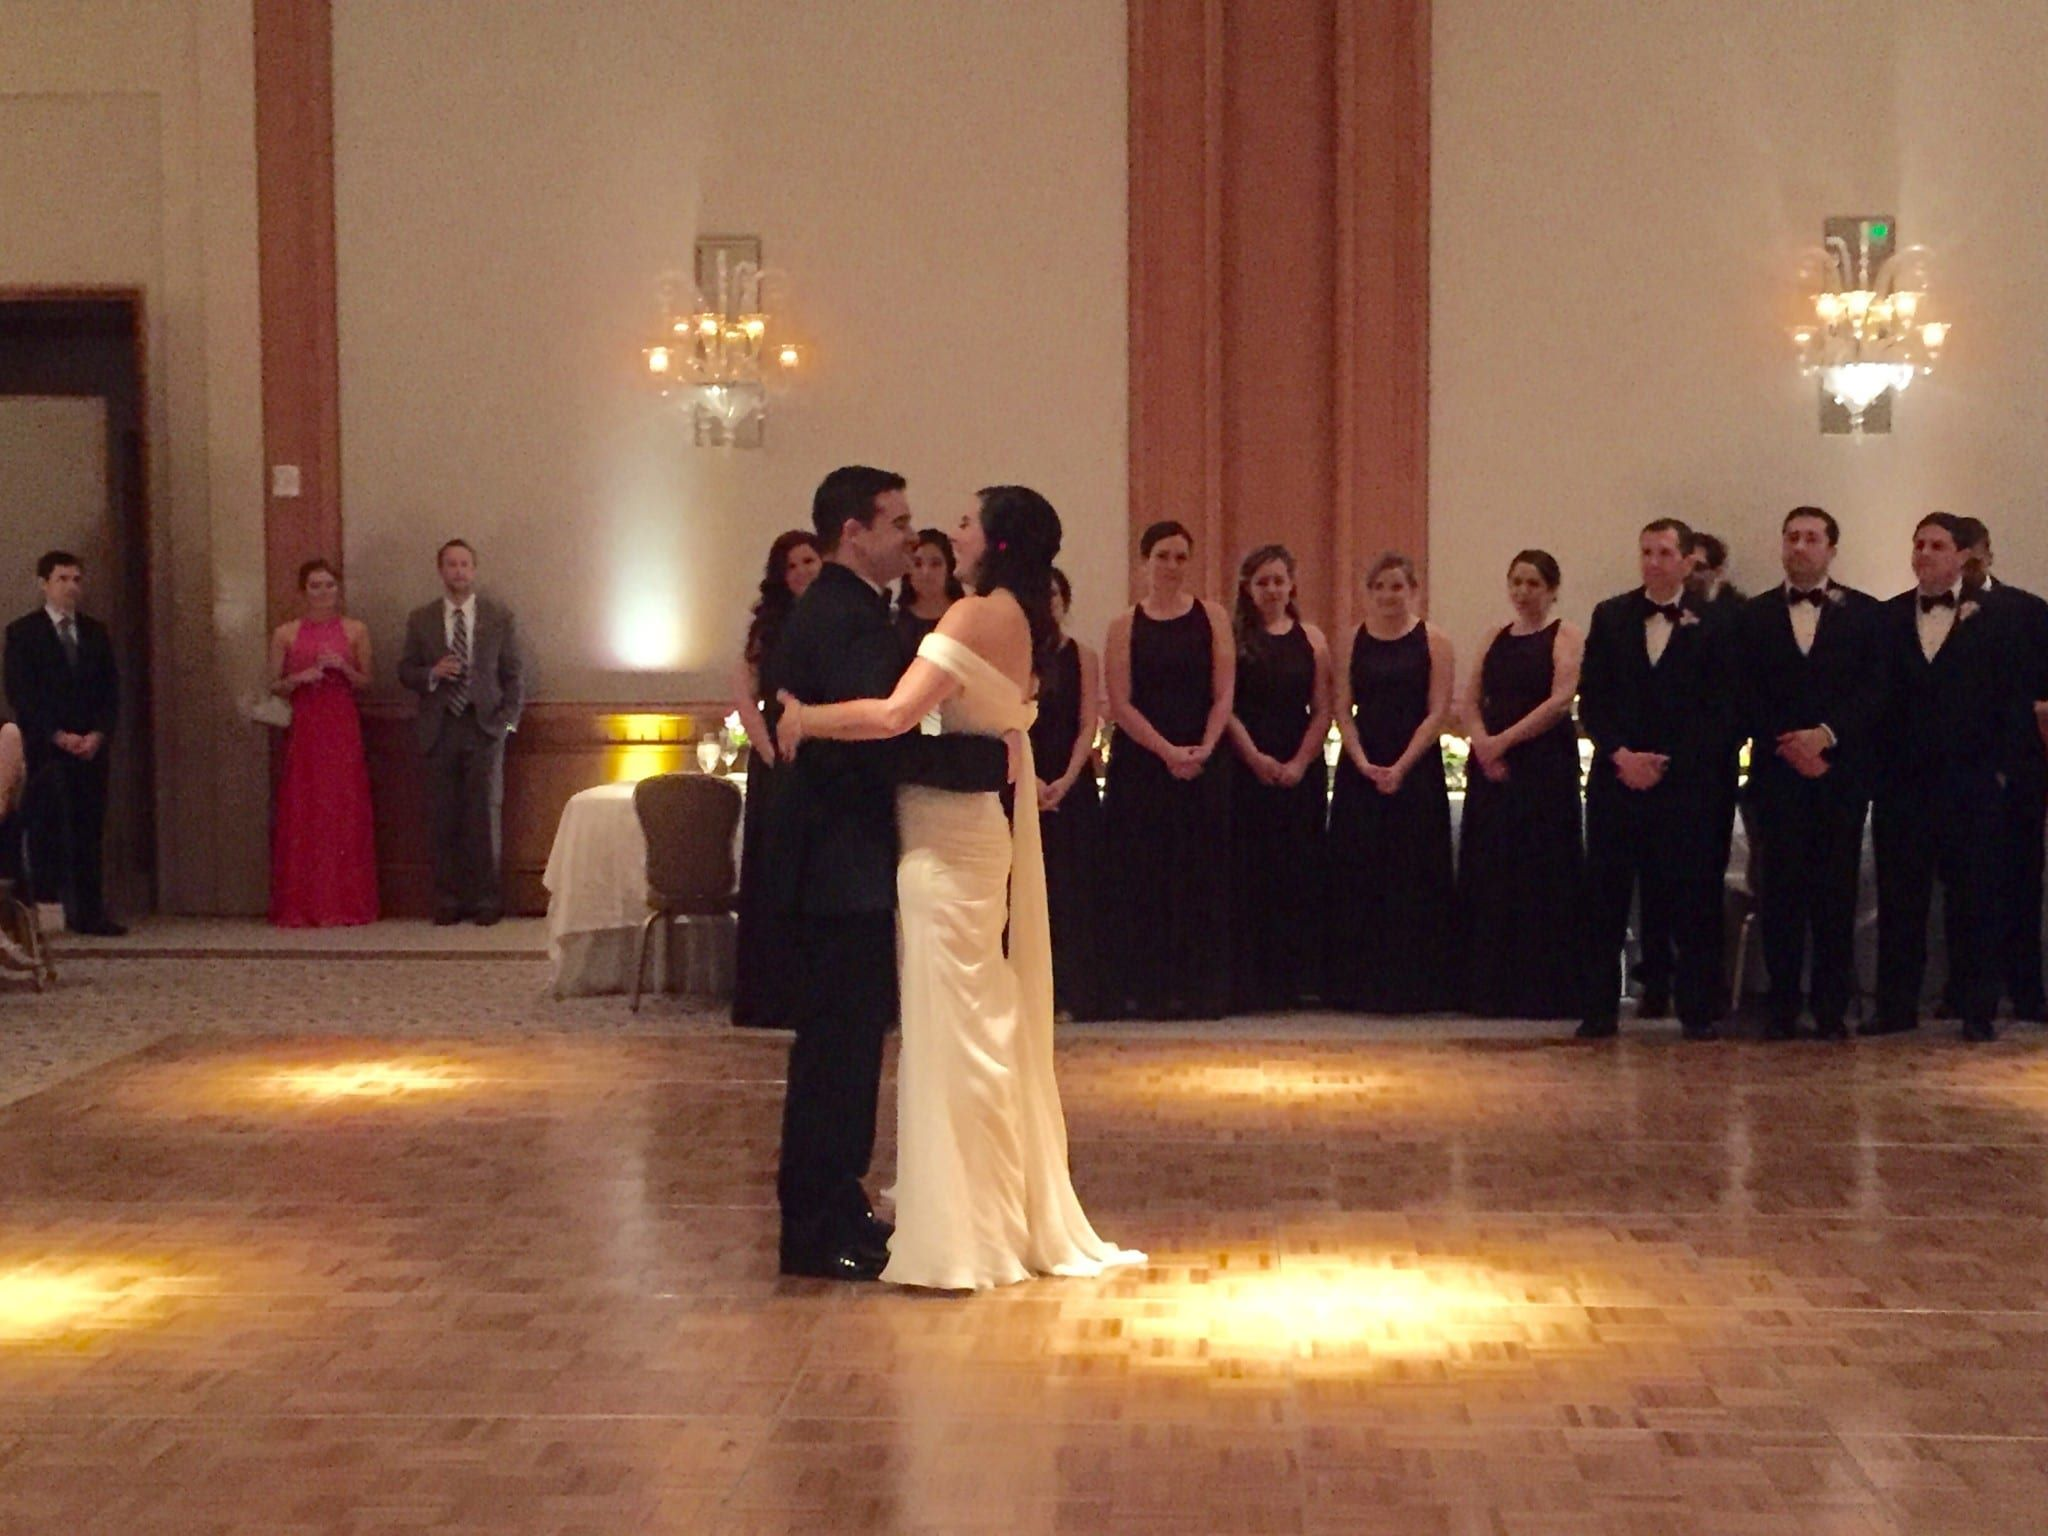 Amanda & Michael's First Dance